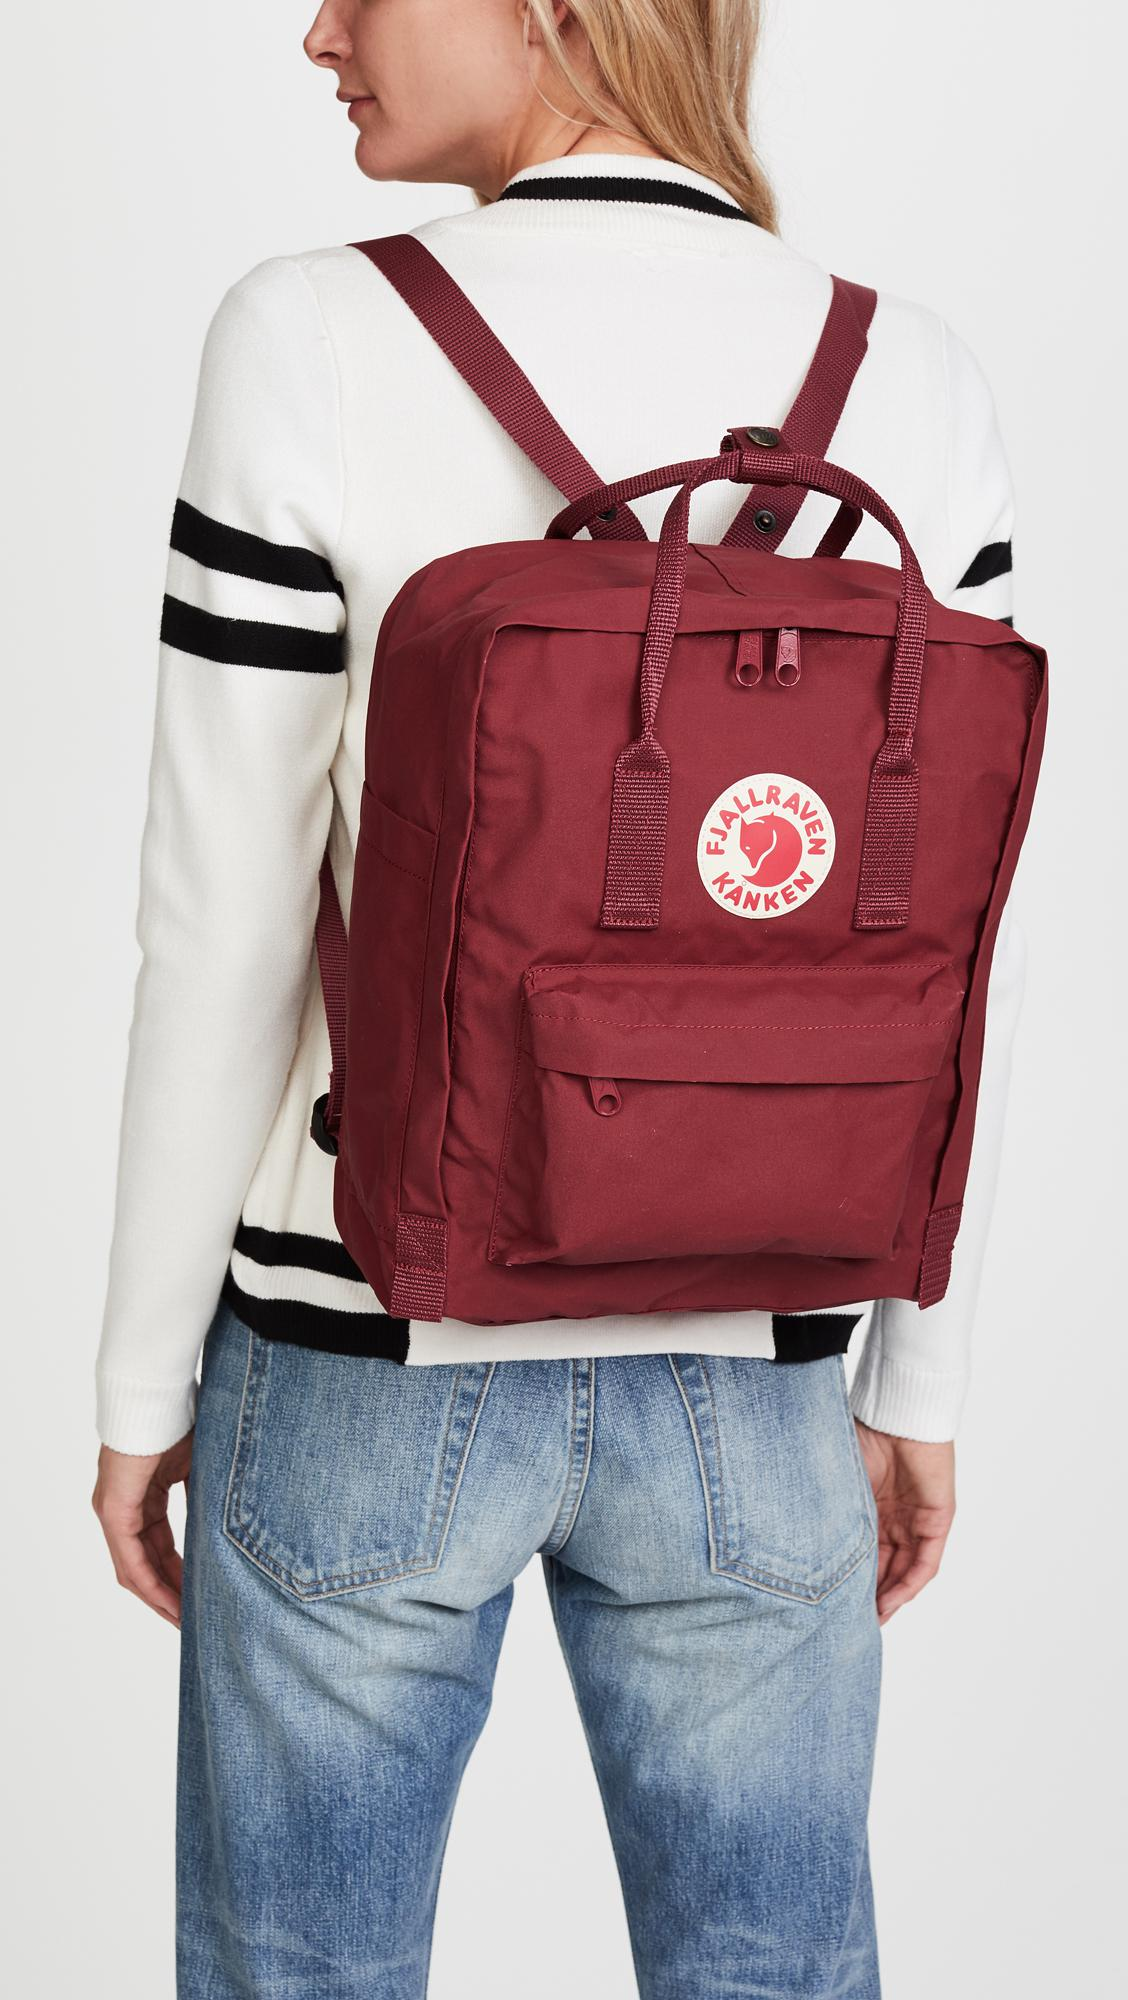 Details about Fjallraven Kanken Classic Pack 15x10.6x5.1 Backpack 23510 Royal Blue Ox Red